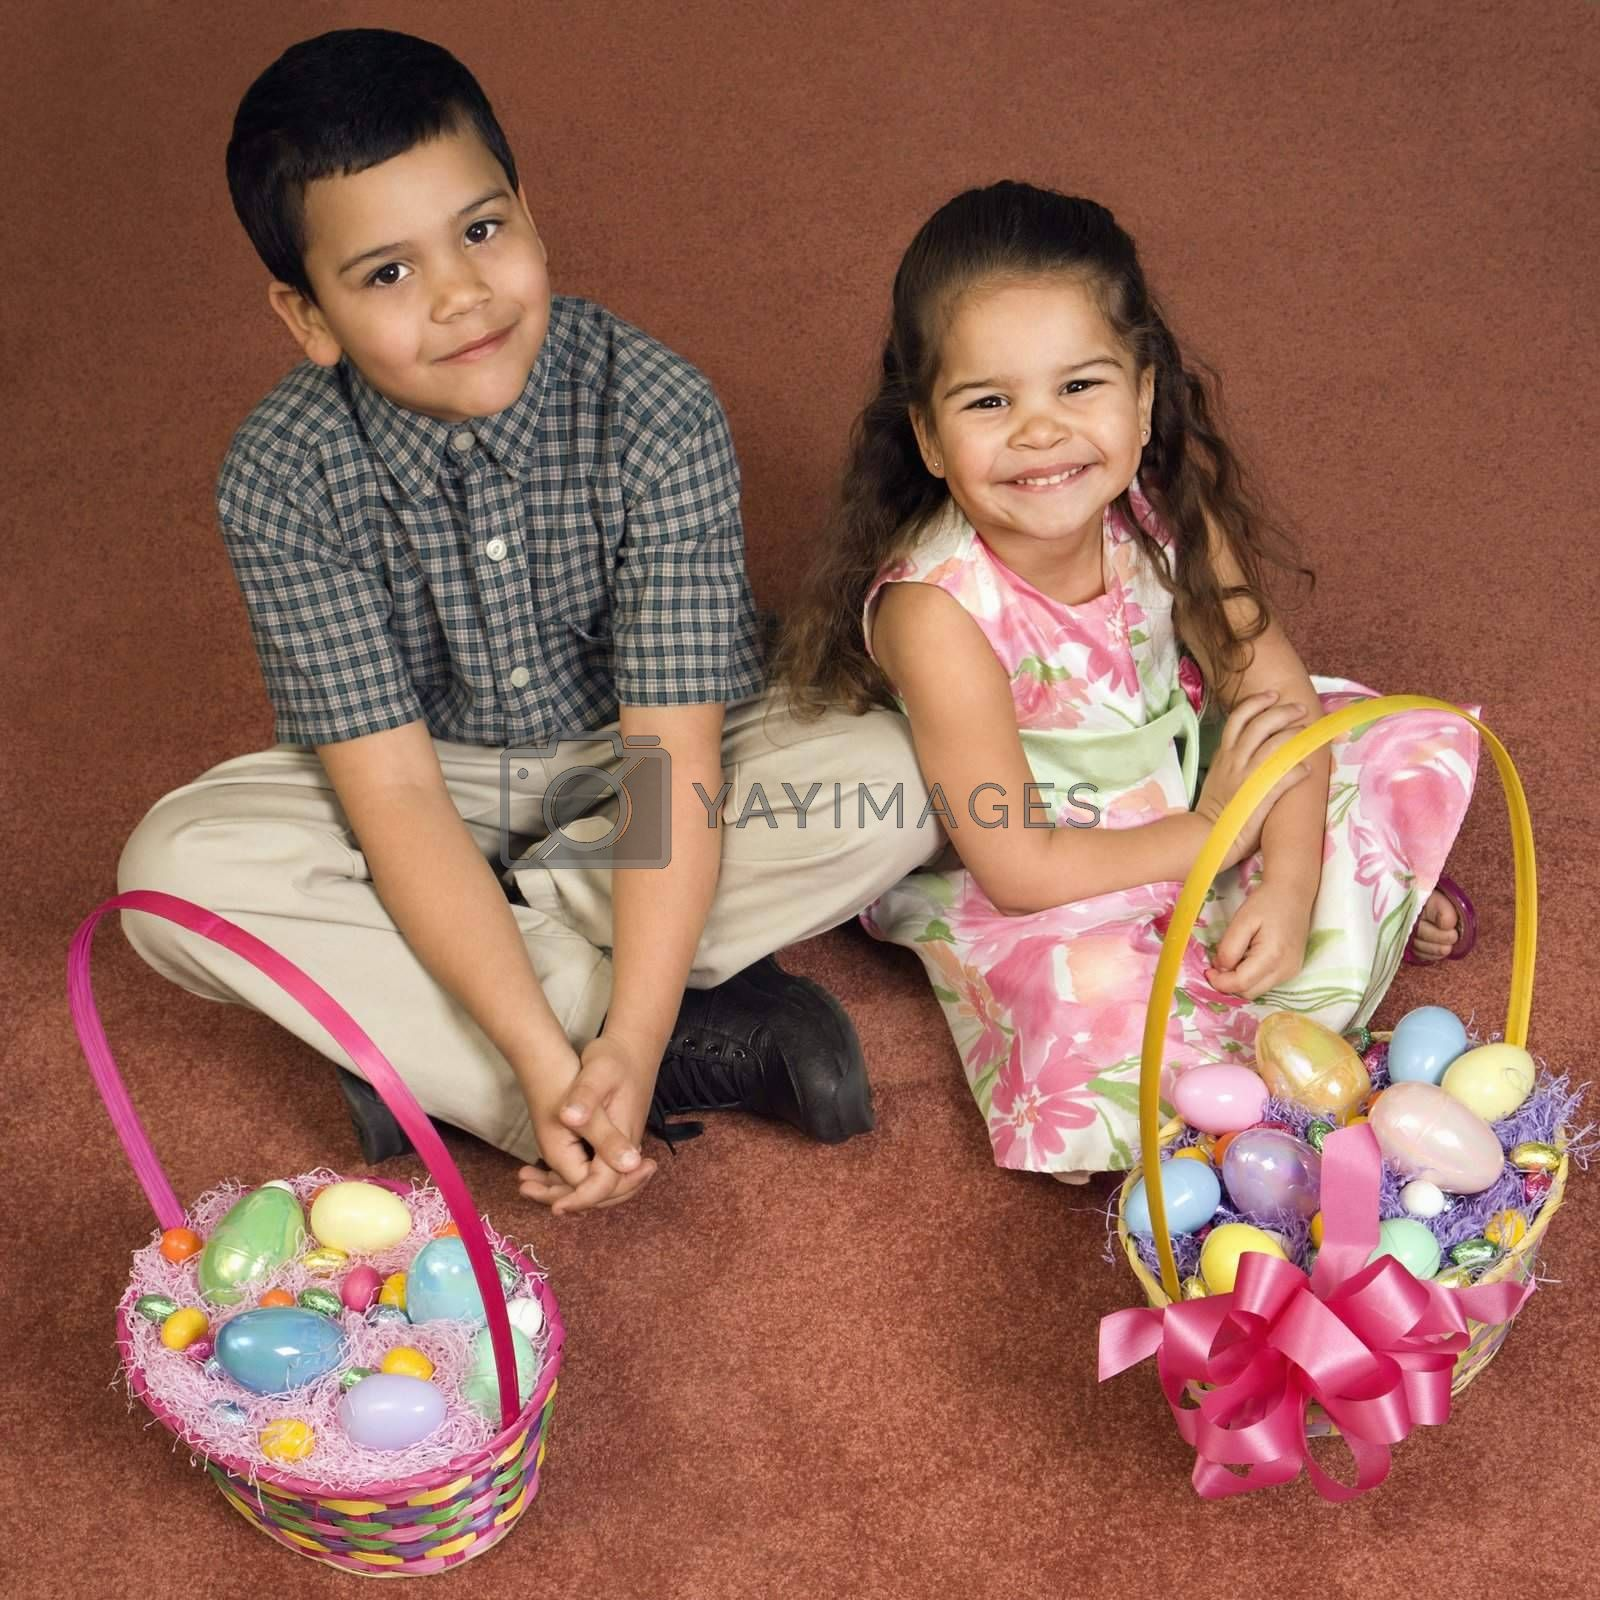 Hispanic brother and sister sitting on floor with Easter baskets looking up at viewer smiling.